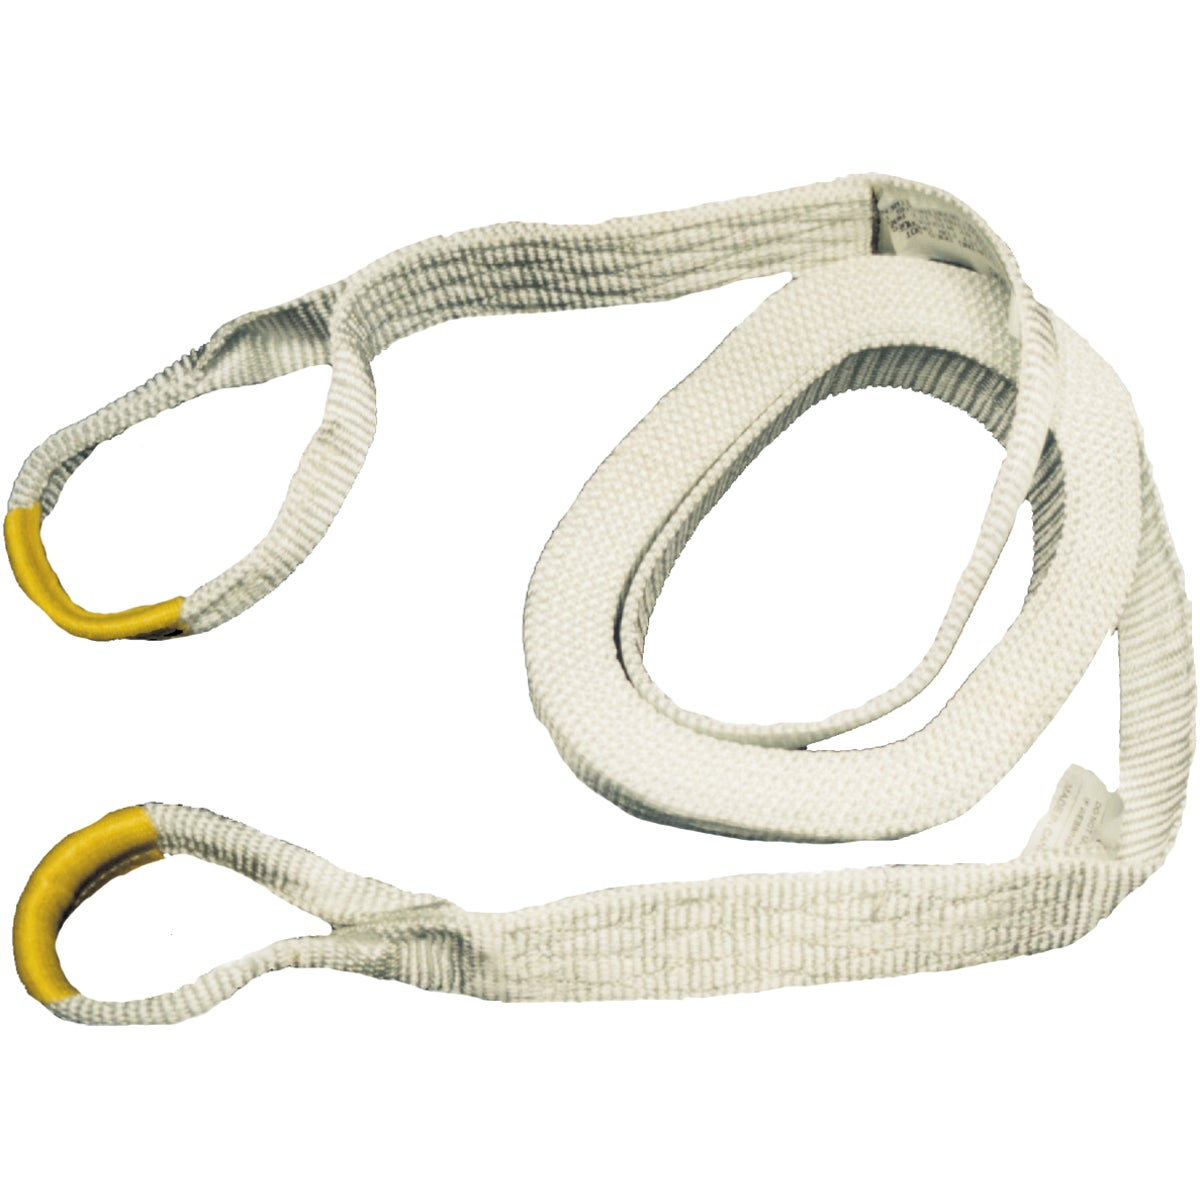 "2""X30' RECOVERY STRAP - 59600 by Erickson Mfg Ltd"